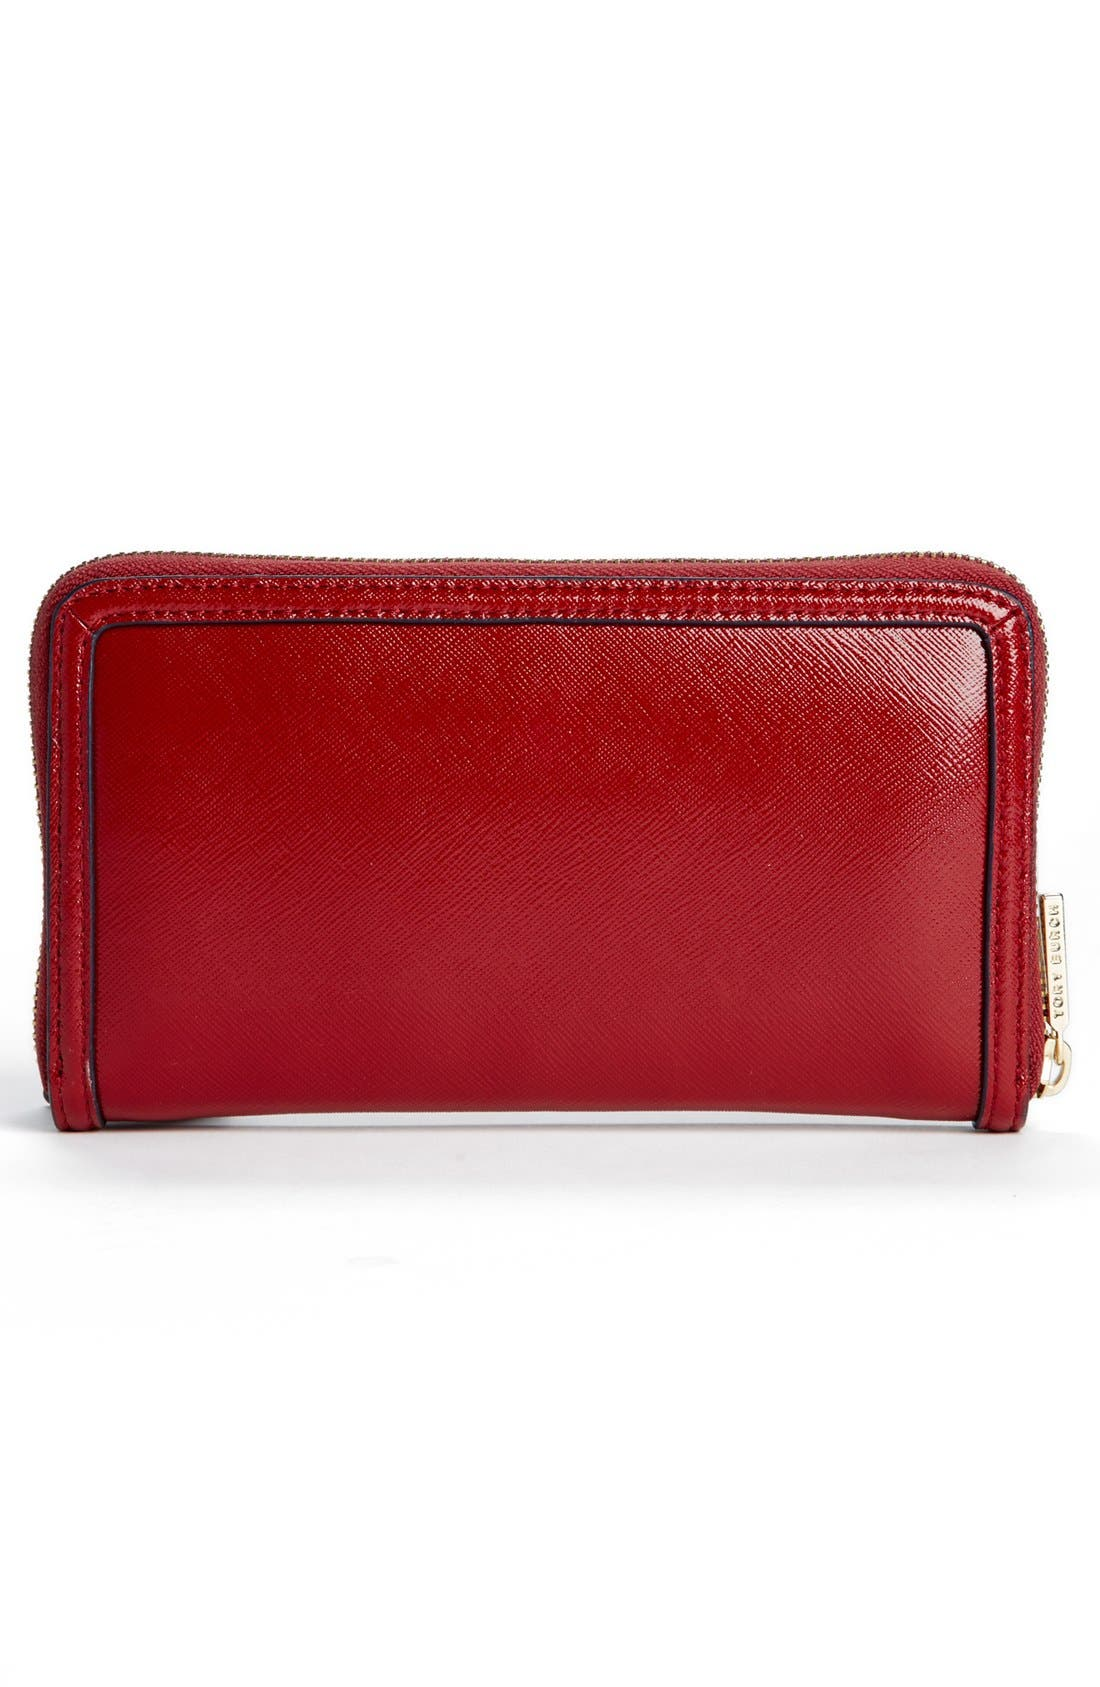 Alternate Image 3  - Tory Burch Continental Wallet